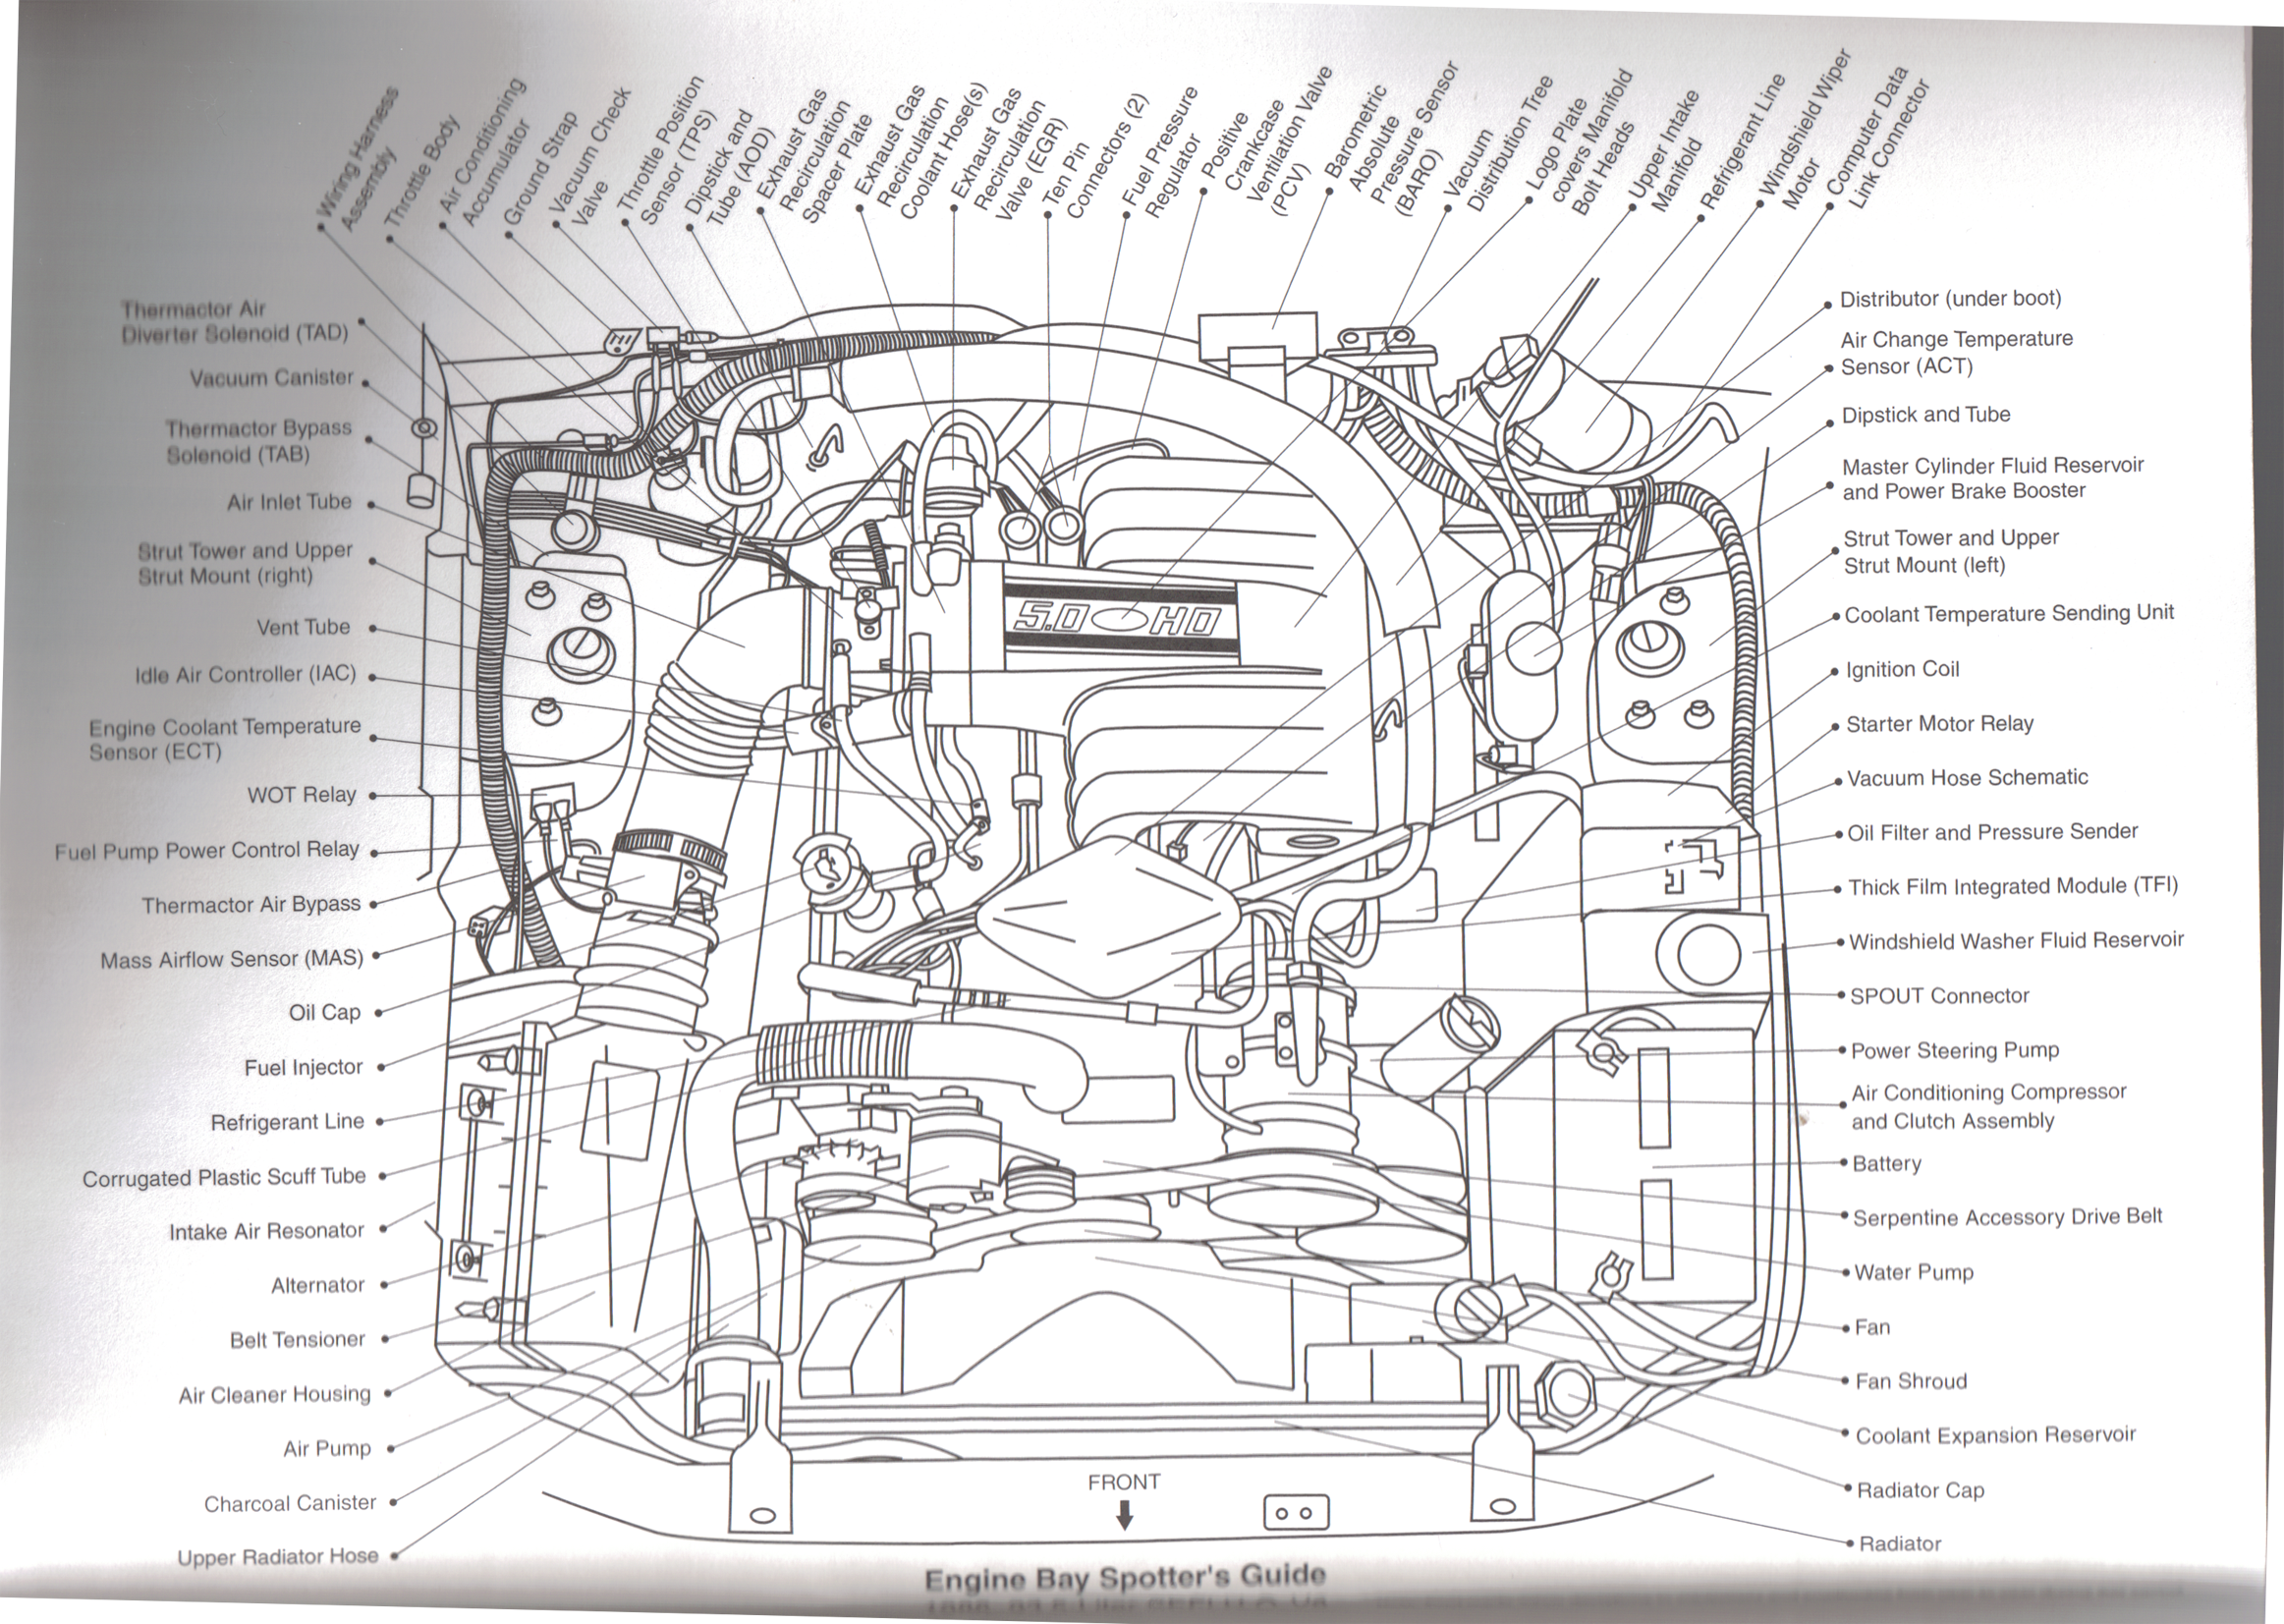 1987 1993 foxbody 5.0 sefi v8 engine part diagram everything you need to know about 1979 1993 foxbody mustangs 1967 Mustang Wiring Schematic at alyssarenee.co